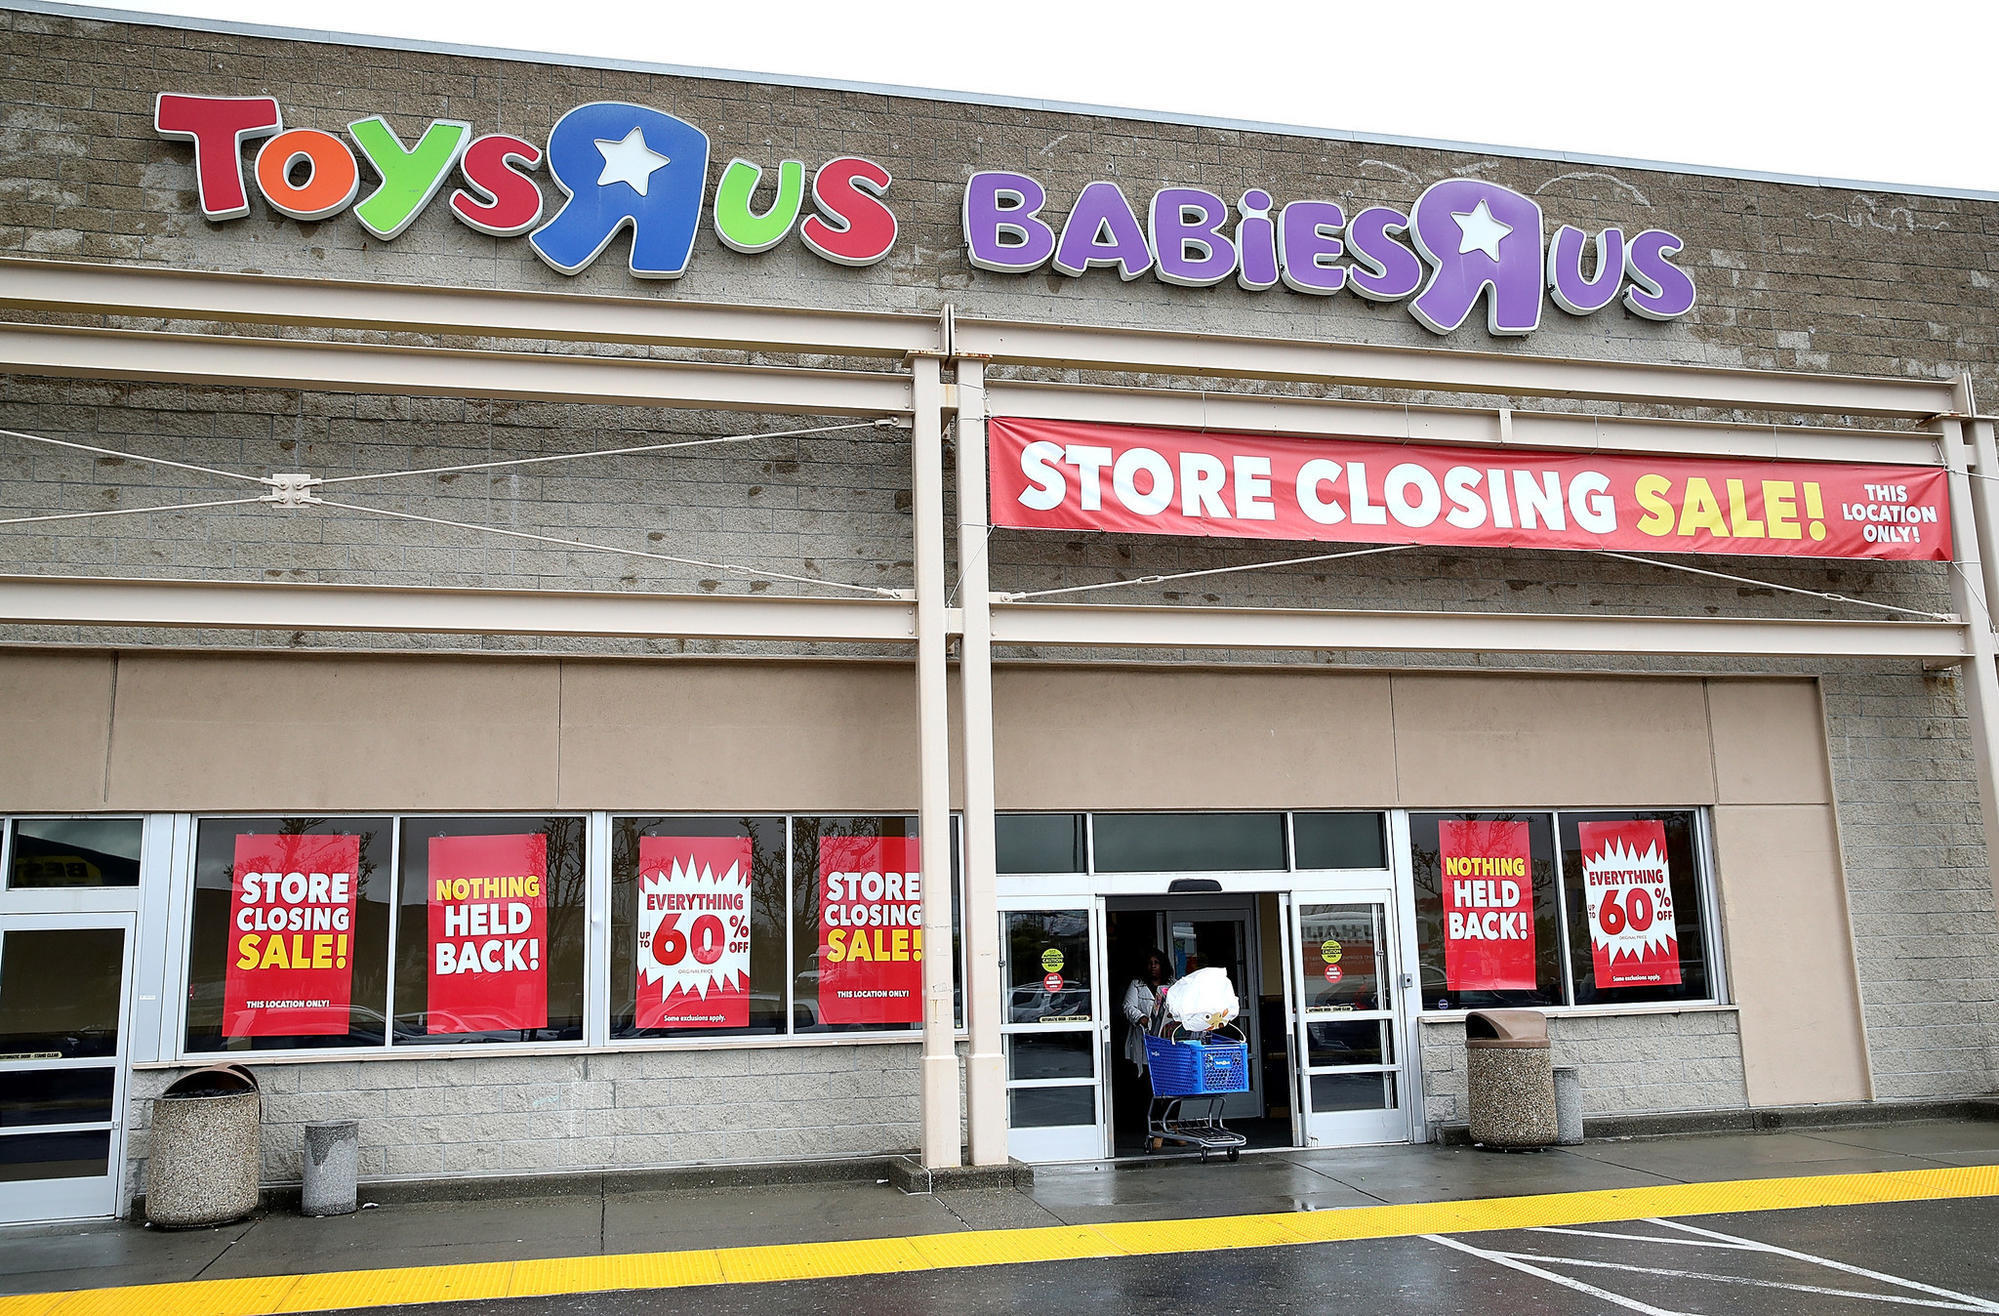 Unused Toys R Us Gift Cards Worth Store Credit At Bed Bath